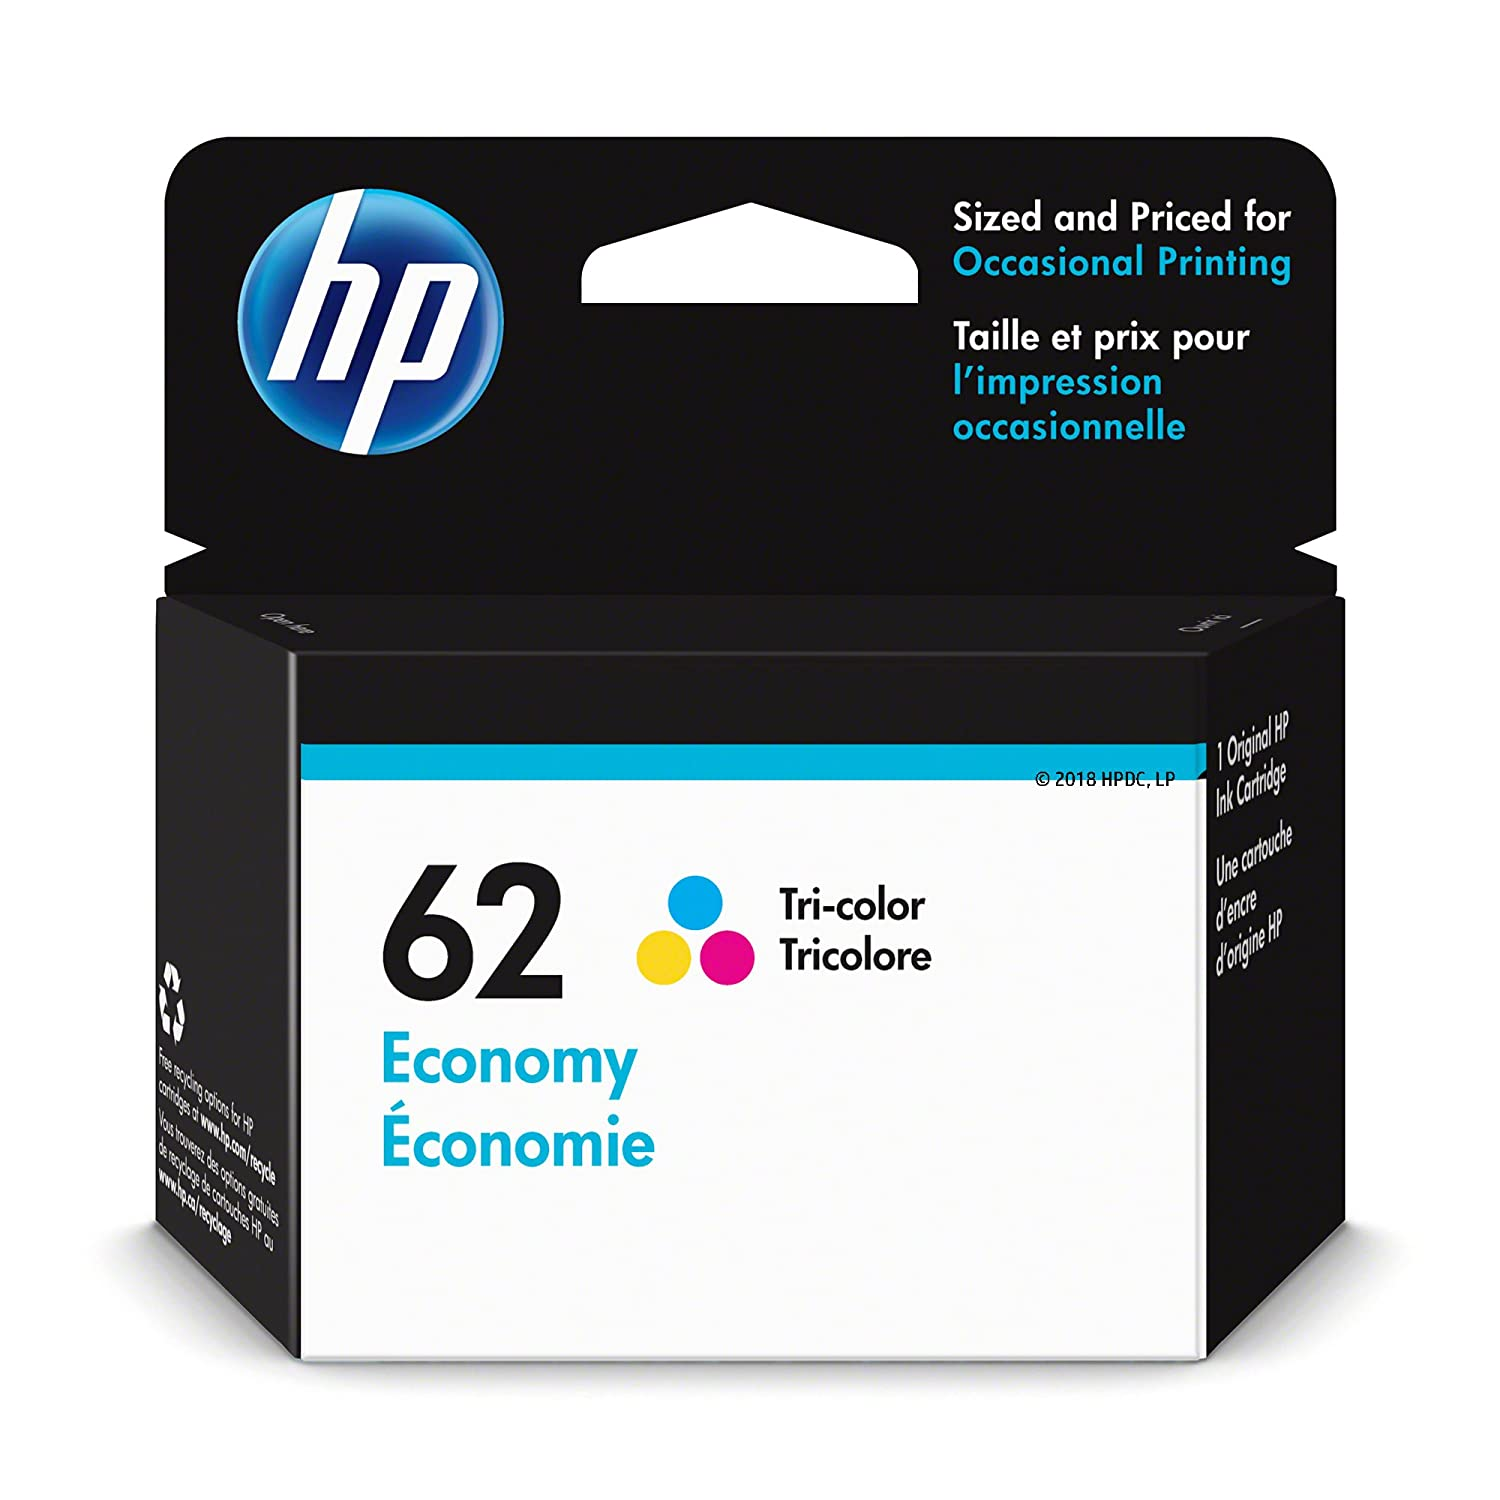 HP 62 Ink Cartridge Tri-Color Economy (1VV42AN) for HP Envy 5540 5541 5542 5543 5544 5545 5547 5548 5549 5640 5642 5643 5644 5660 5661 5663 5664 5665 7640 7643 7644 7645 HP Officejet 200 250 258…